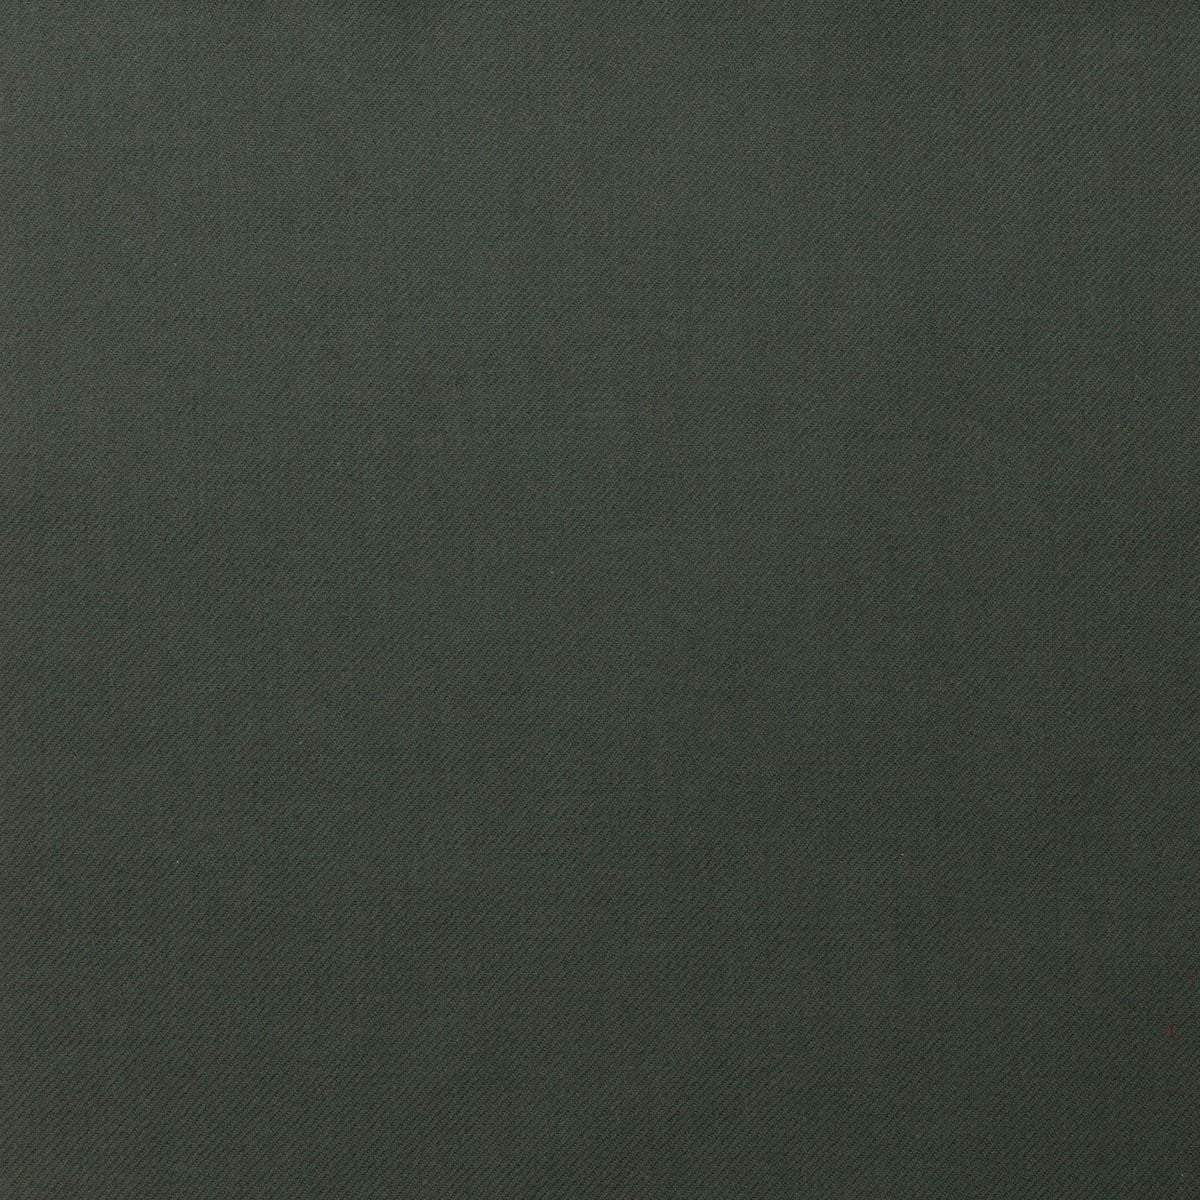 Black Weatered Plain